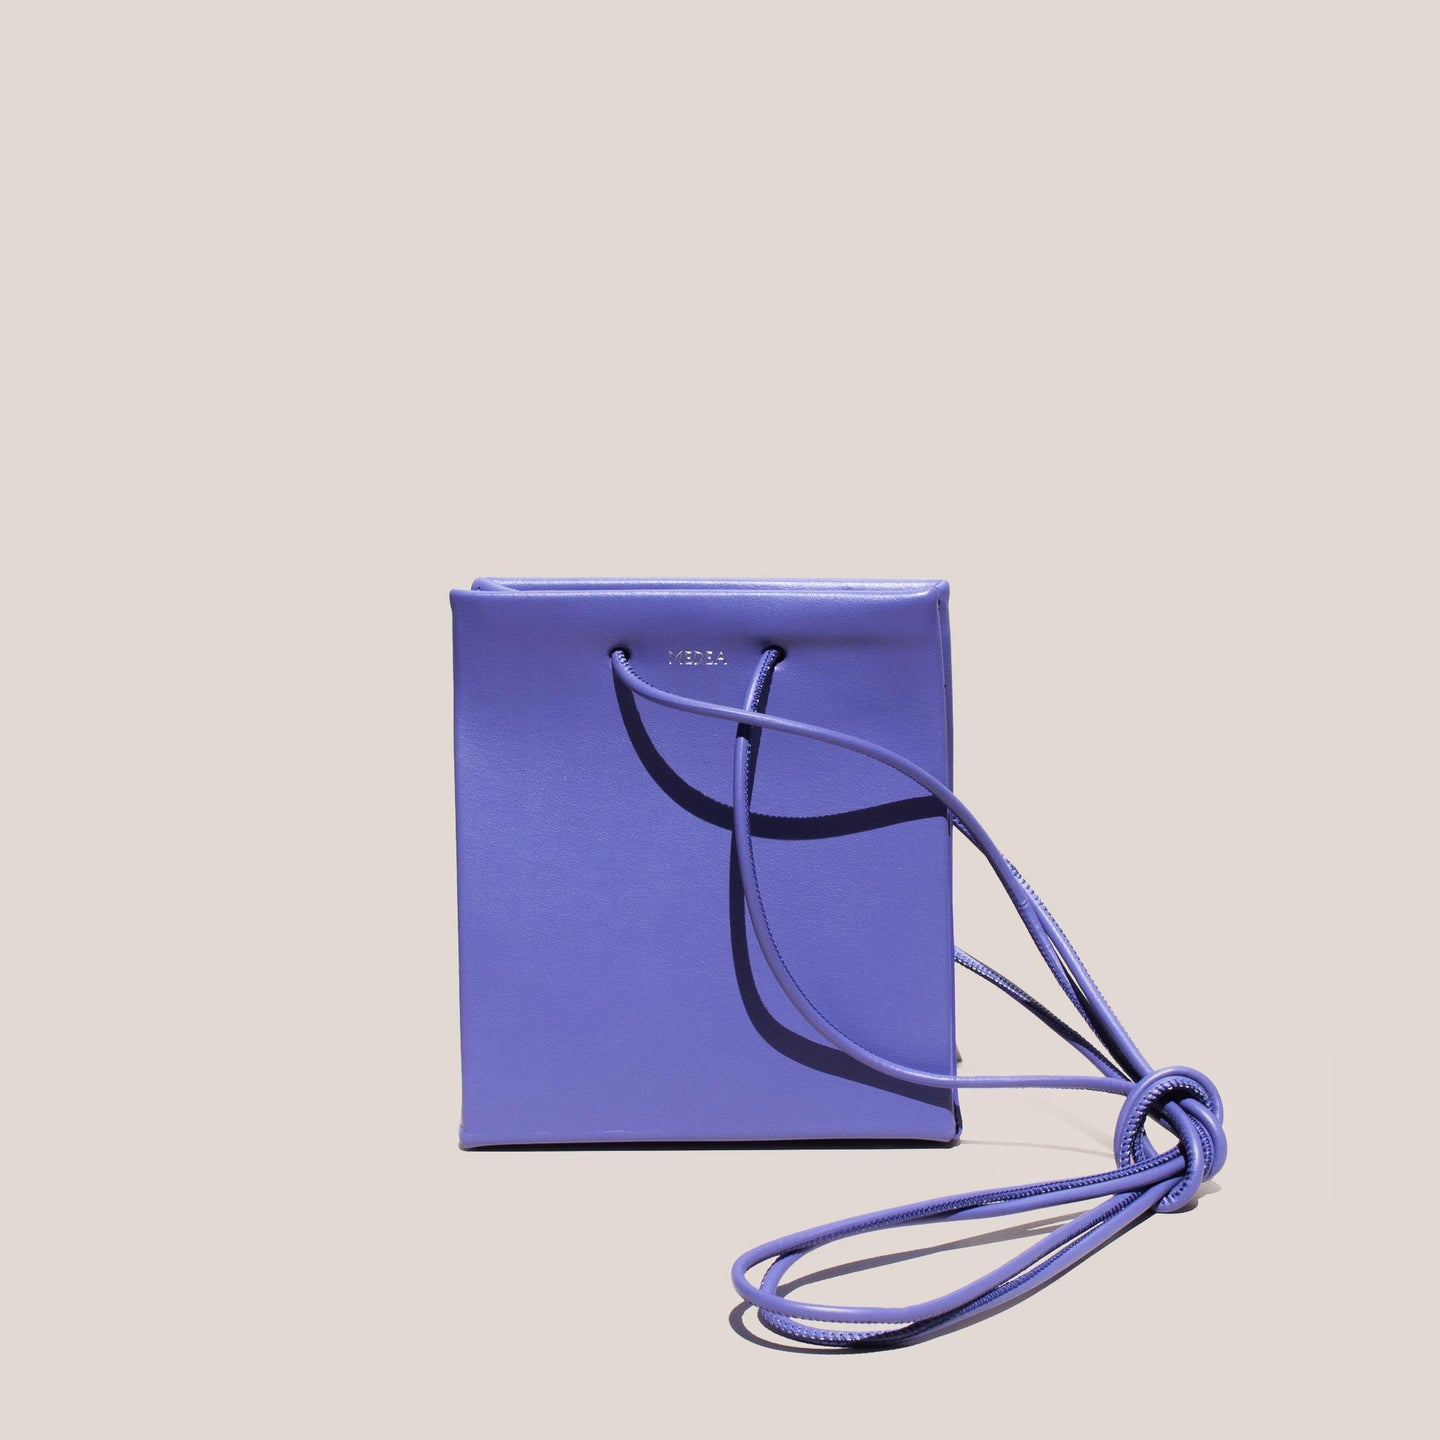 Medea - Prima Short with Long Strap in Violet, front view, available at LCD.